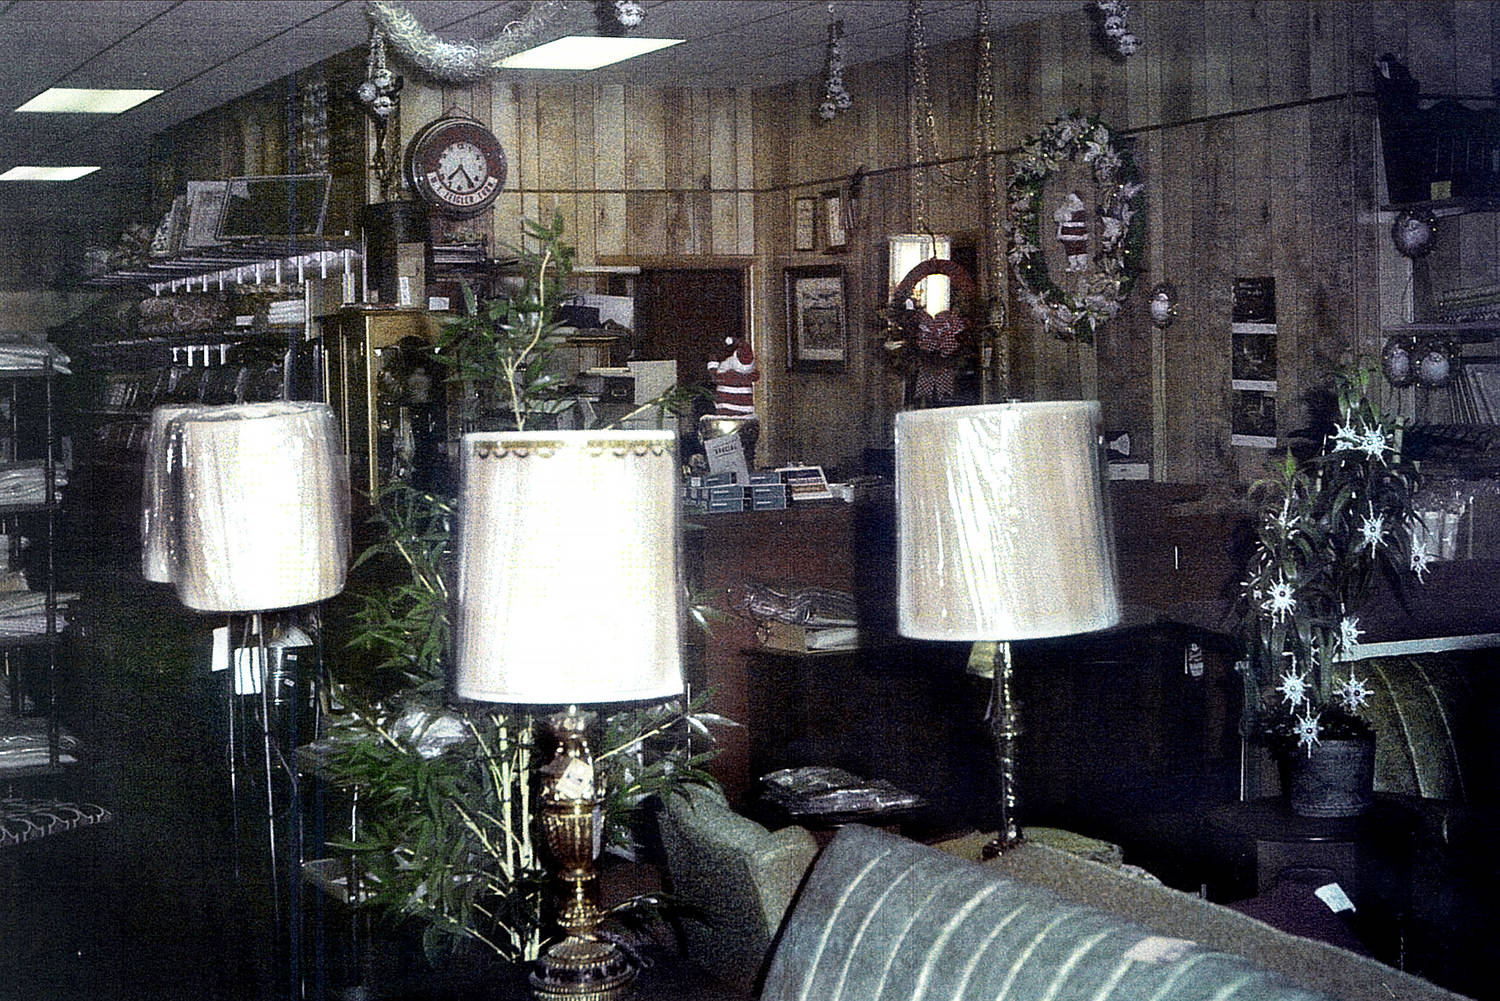 A police photograph of the store. Lamps, wrapped in plastic, in the foreground. On the wood-paneled wall in the background can be seen Christmas decorations and a clock stopped at 7:24.